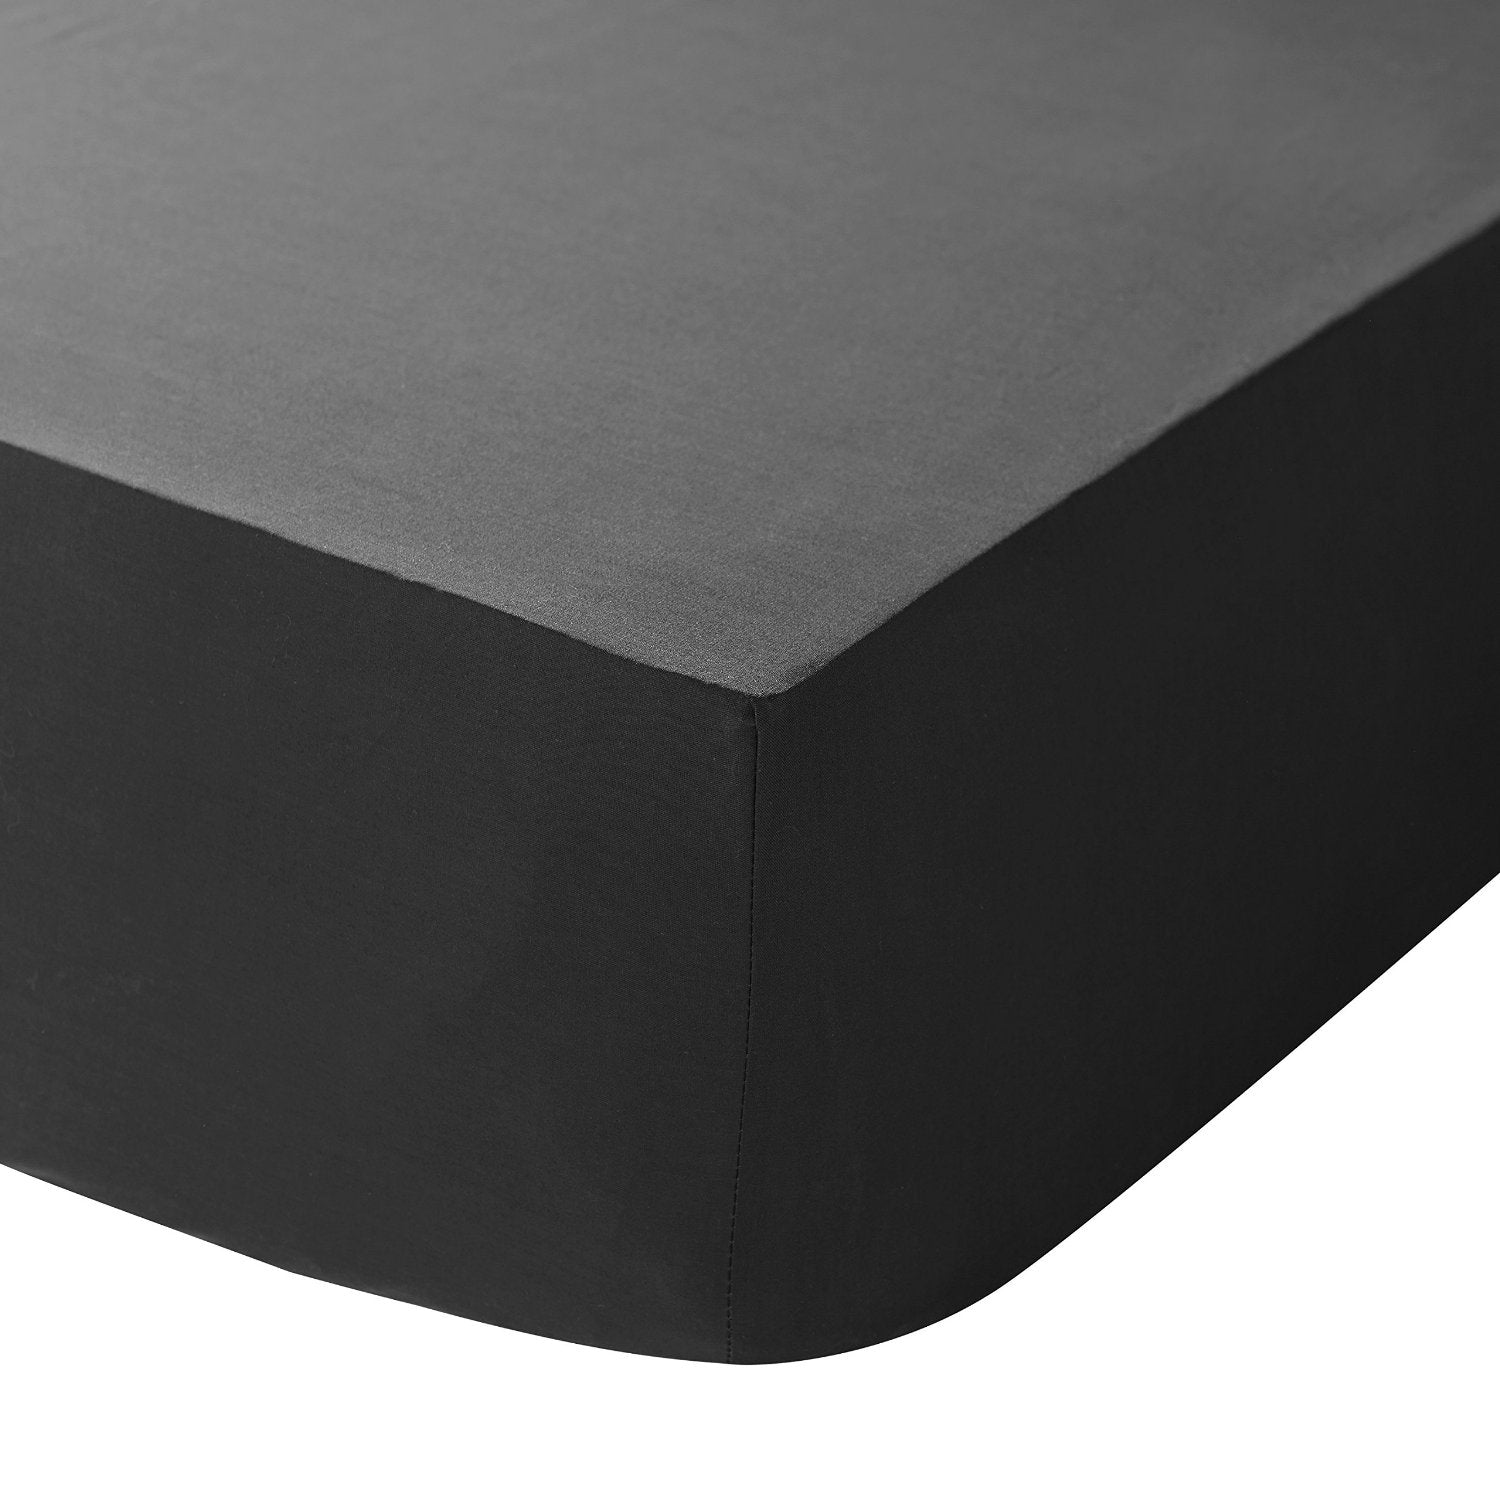 "Black 10"" Deep Fitted Sheet Single 200 TC Percale"